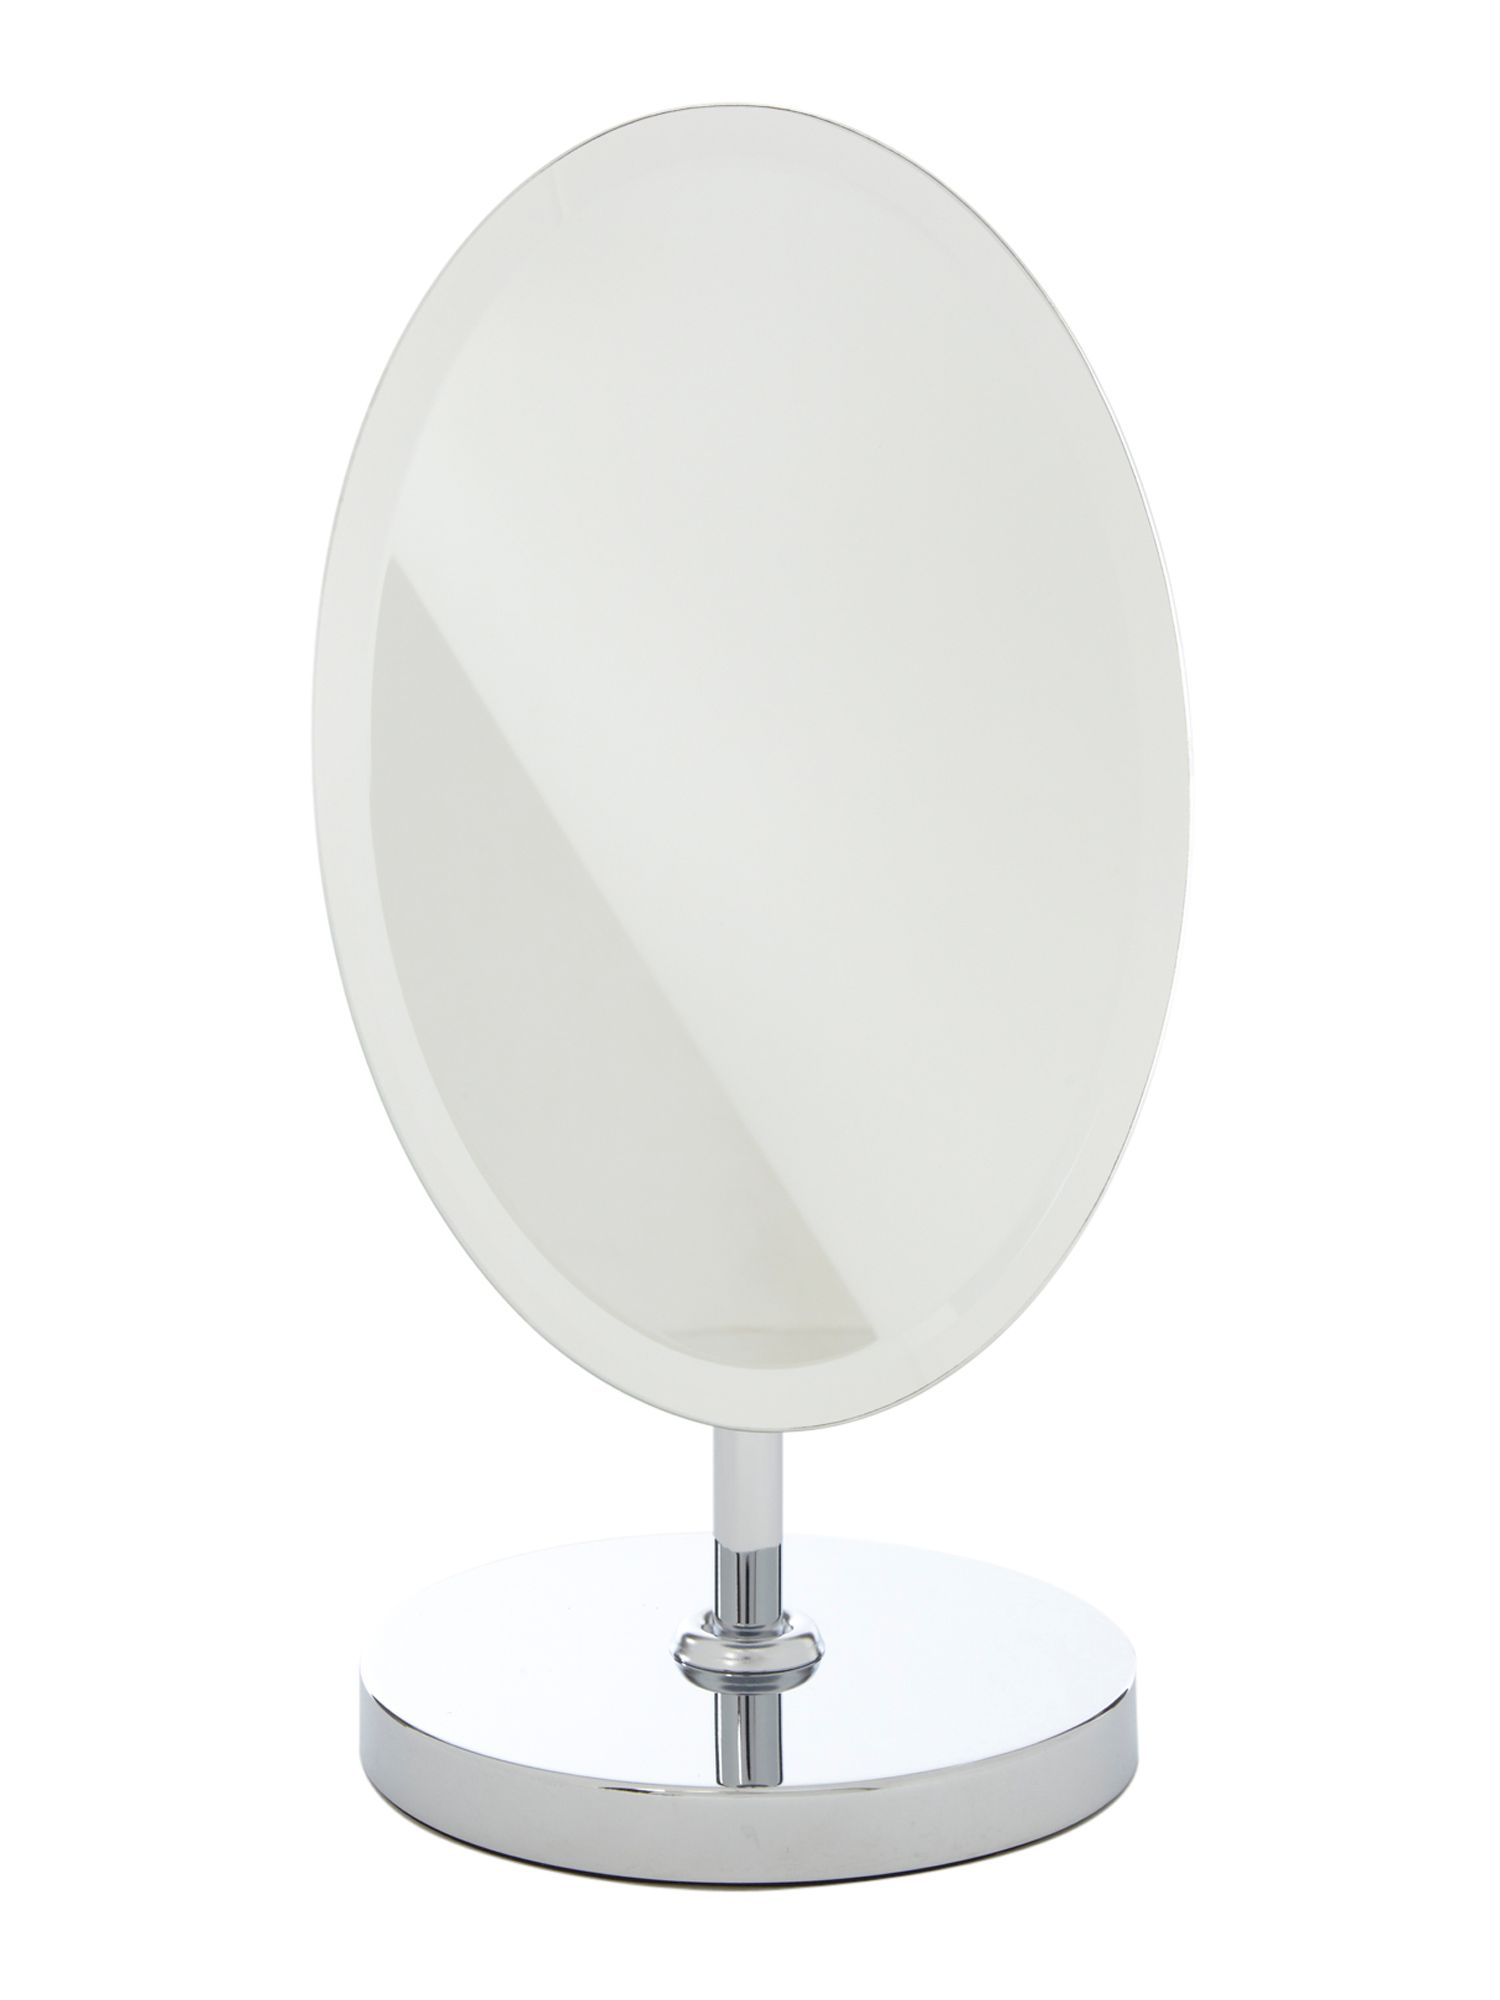 Linea Small Oval Mirror Oval Bathroom Mirrors